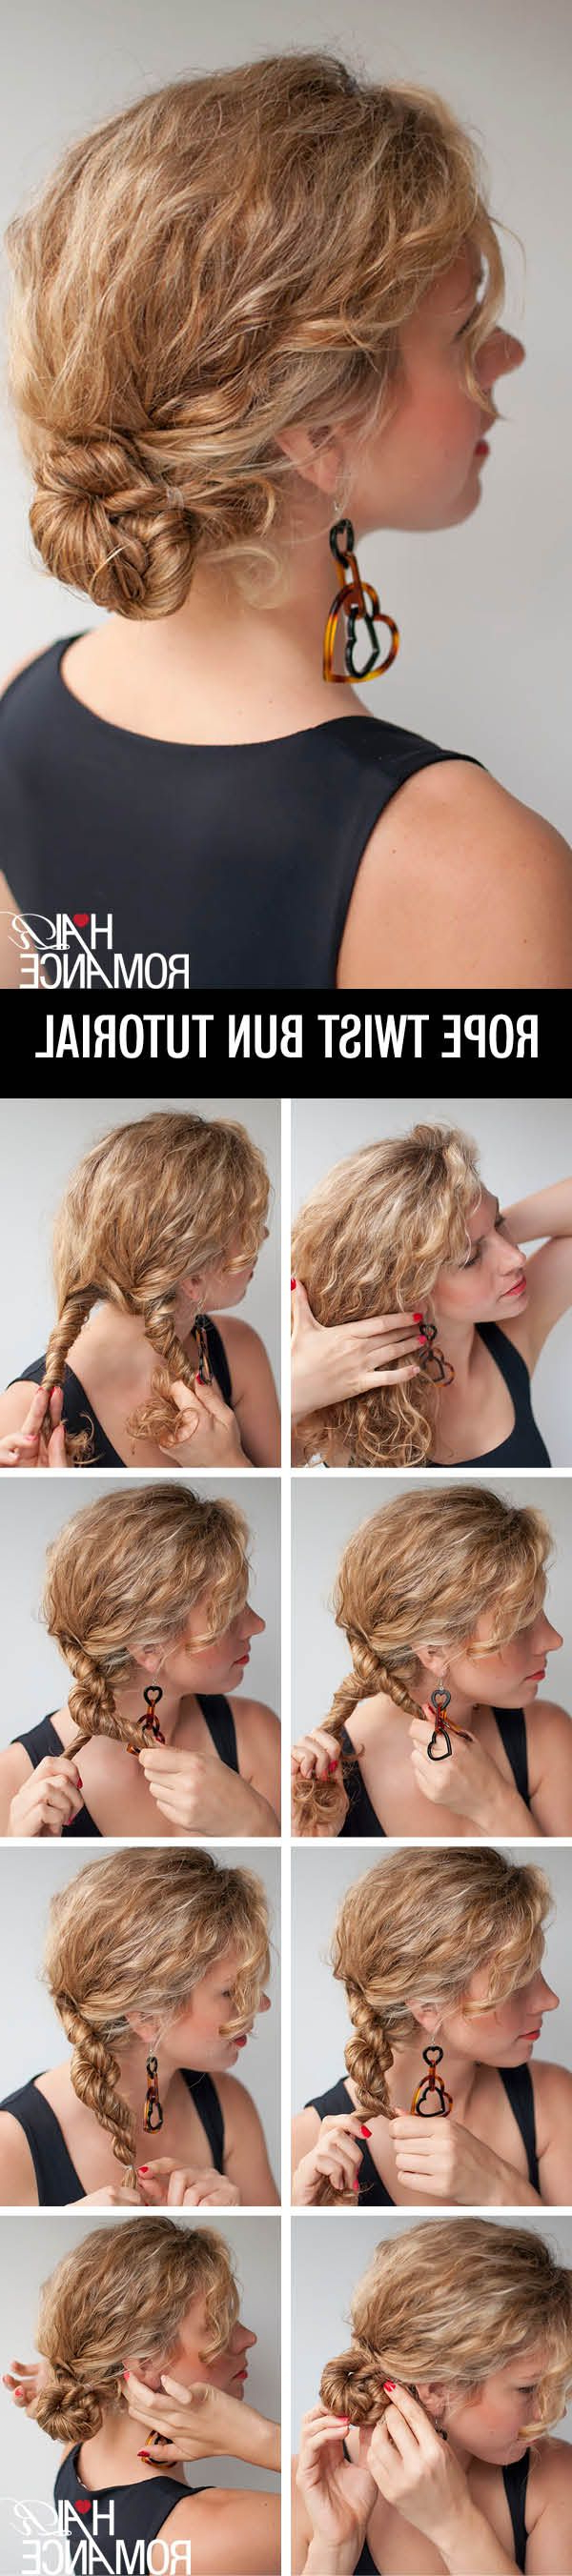 32 Easy Hairstyles For Curly Hair (for Short, Long & Shoulder Length Regarding Short Messy Hairstyles With Twists (View 18 of 20)